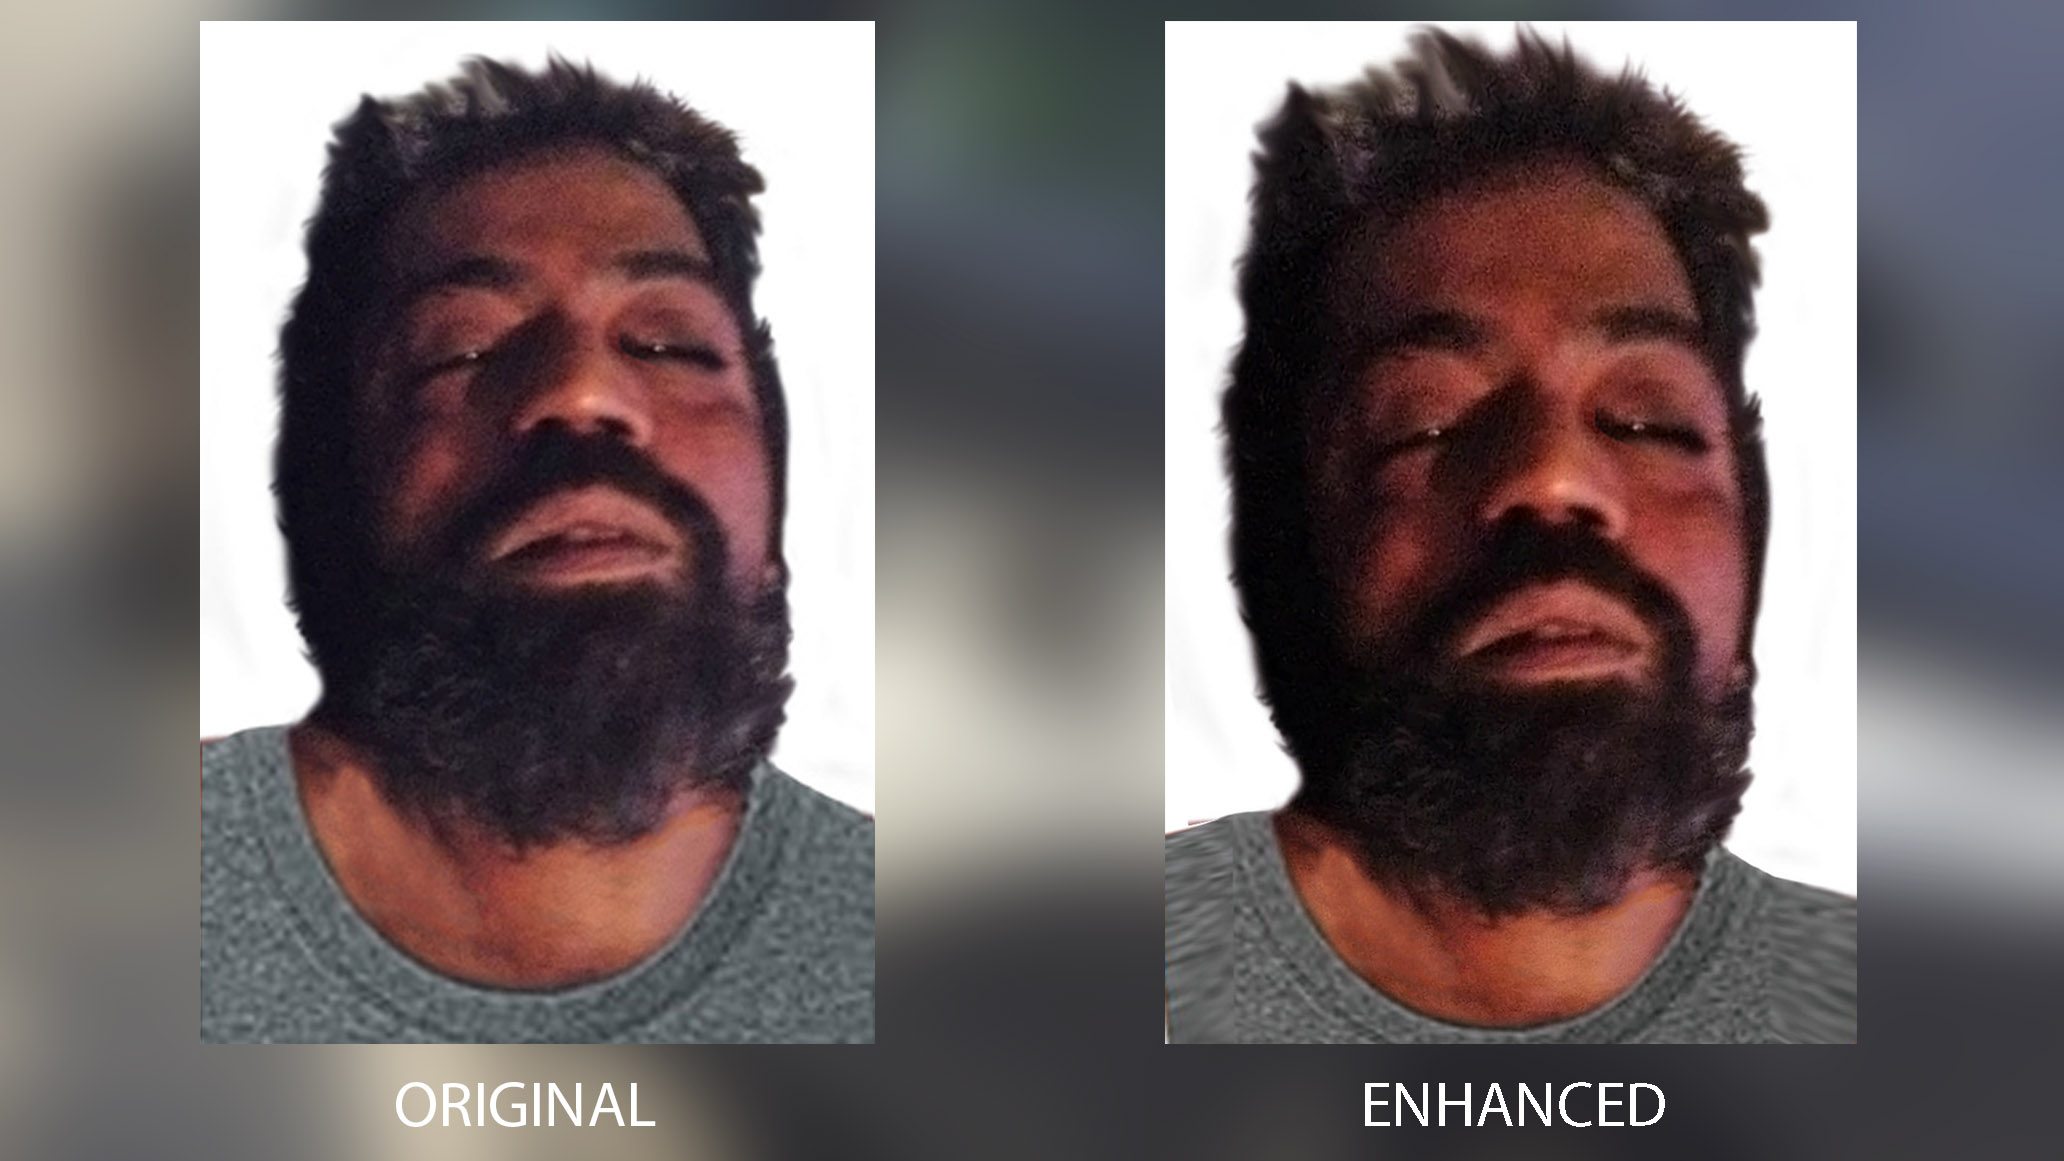 Police have released an enhanced photo of the alleged McArthur victim that was first made public on Monday.